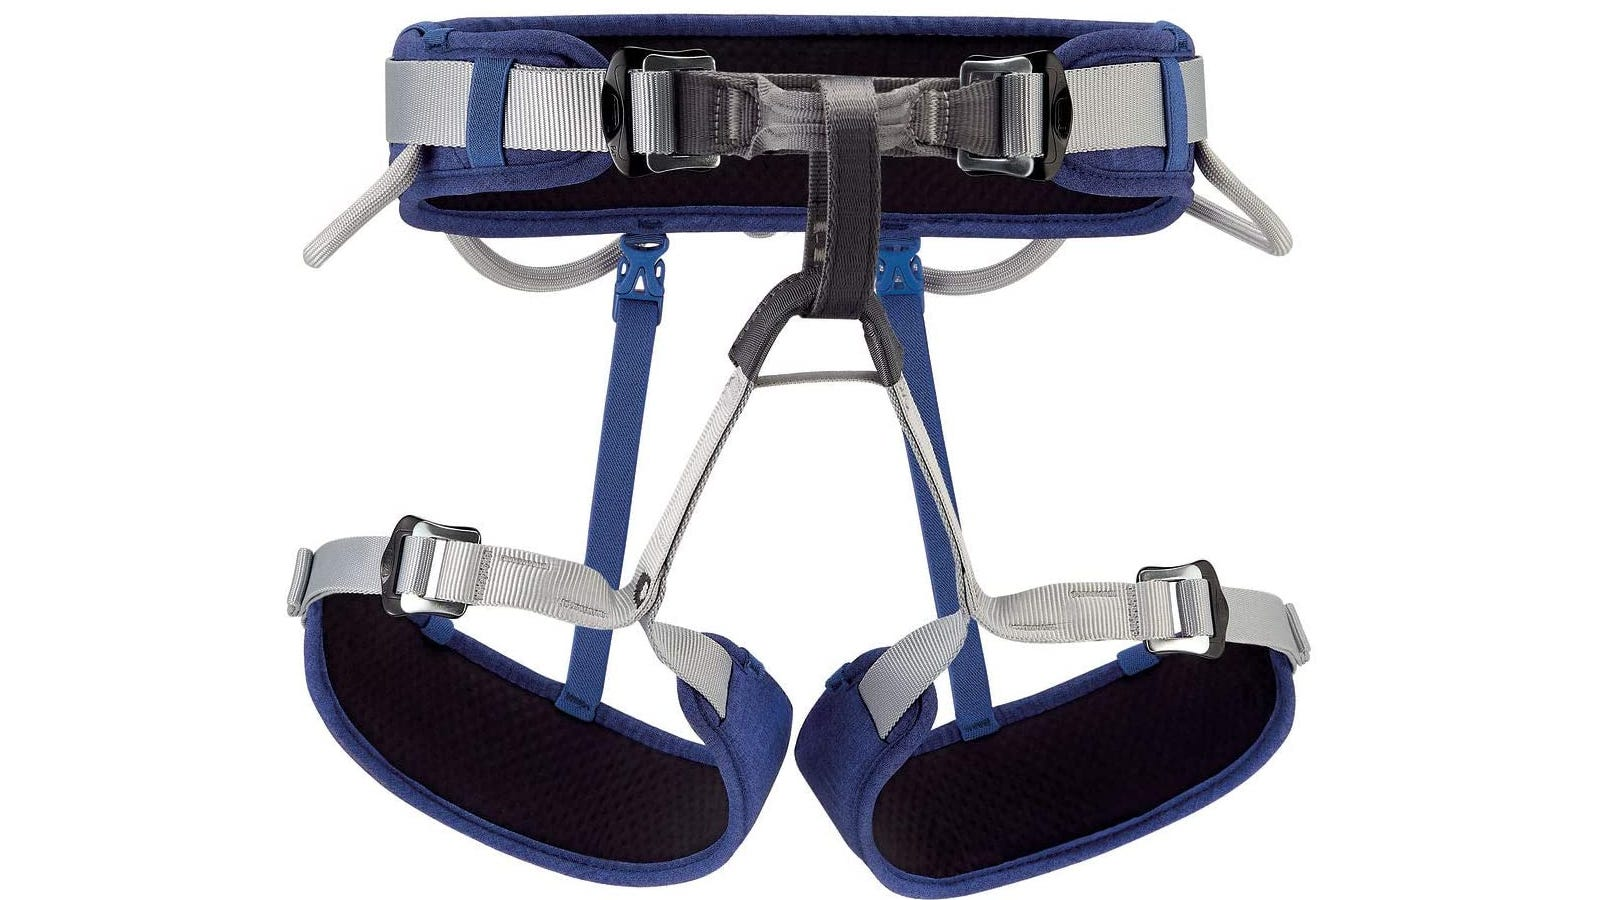 A blue and gray padded climbing harness.